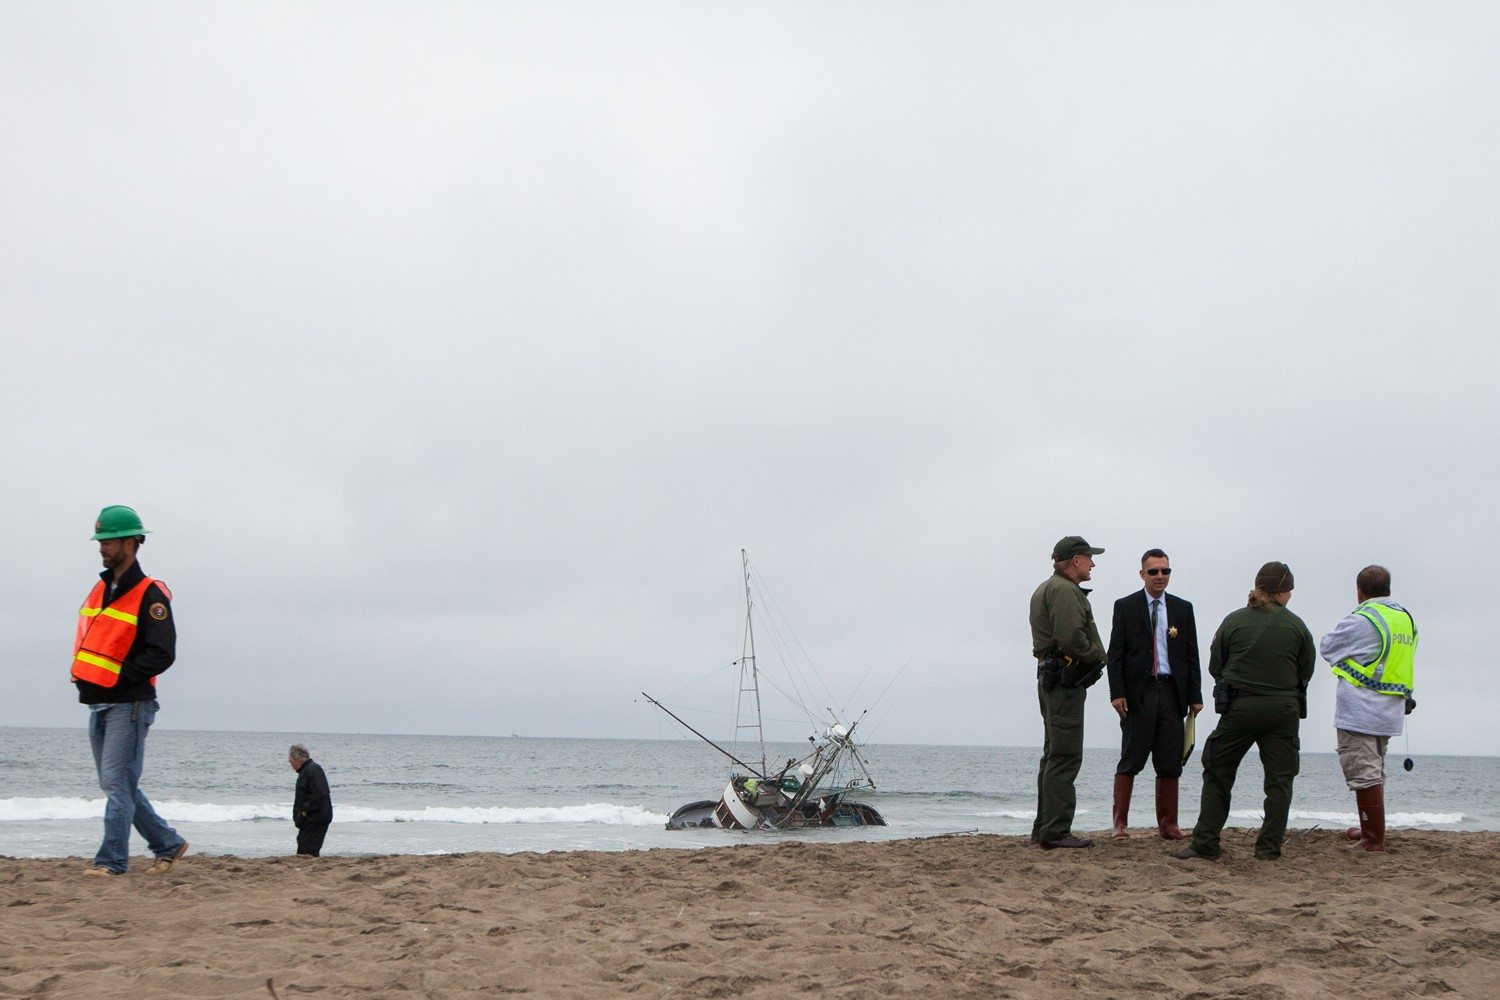 Nathaniel Y. Downes/special to the s.f. examinerCrews are working to remove a fishing boat from Ocean Beach.